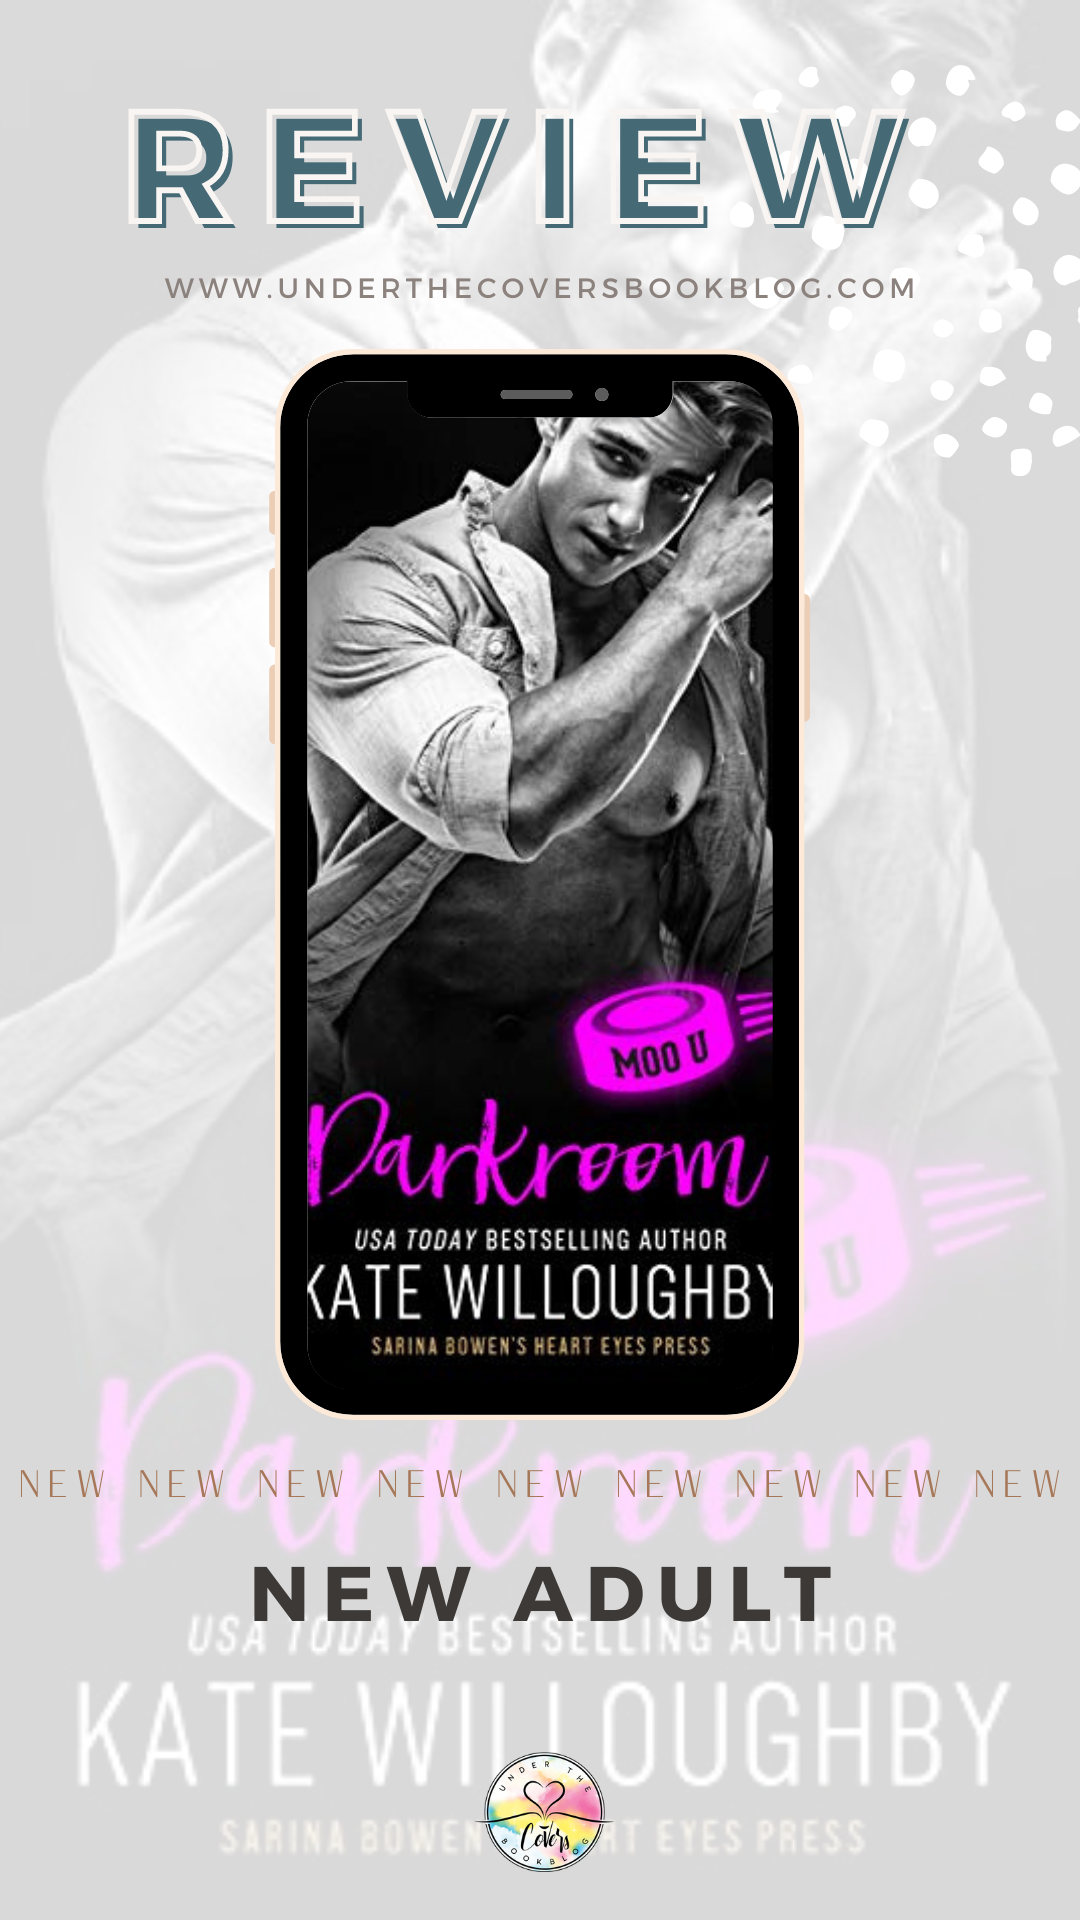 ARC Review: Darkroom by Kate Willoughby